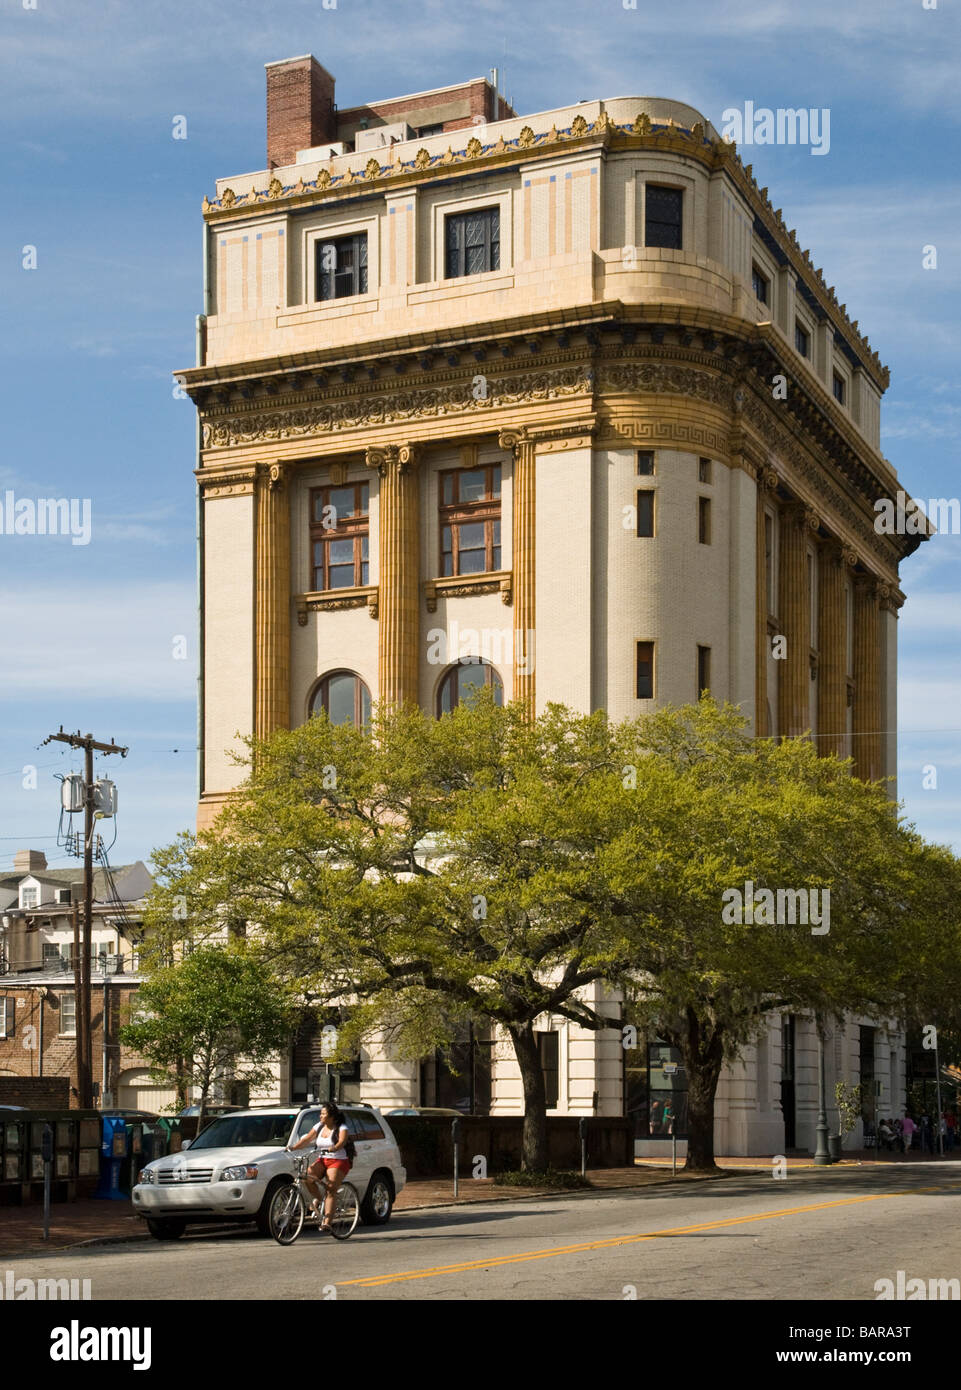 The Scottish Rite Temple was built in 1913 and is located at 341 Bull Street - Stock Image